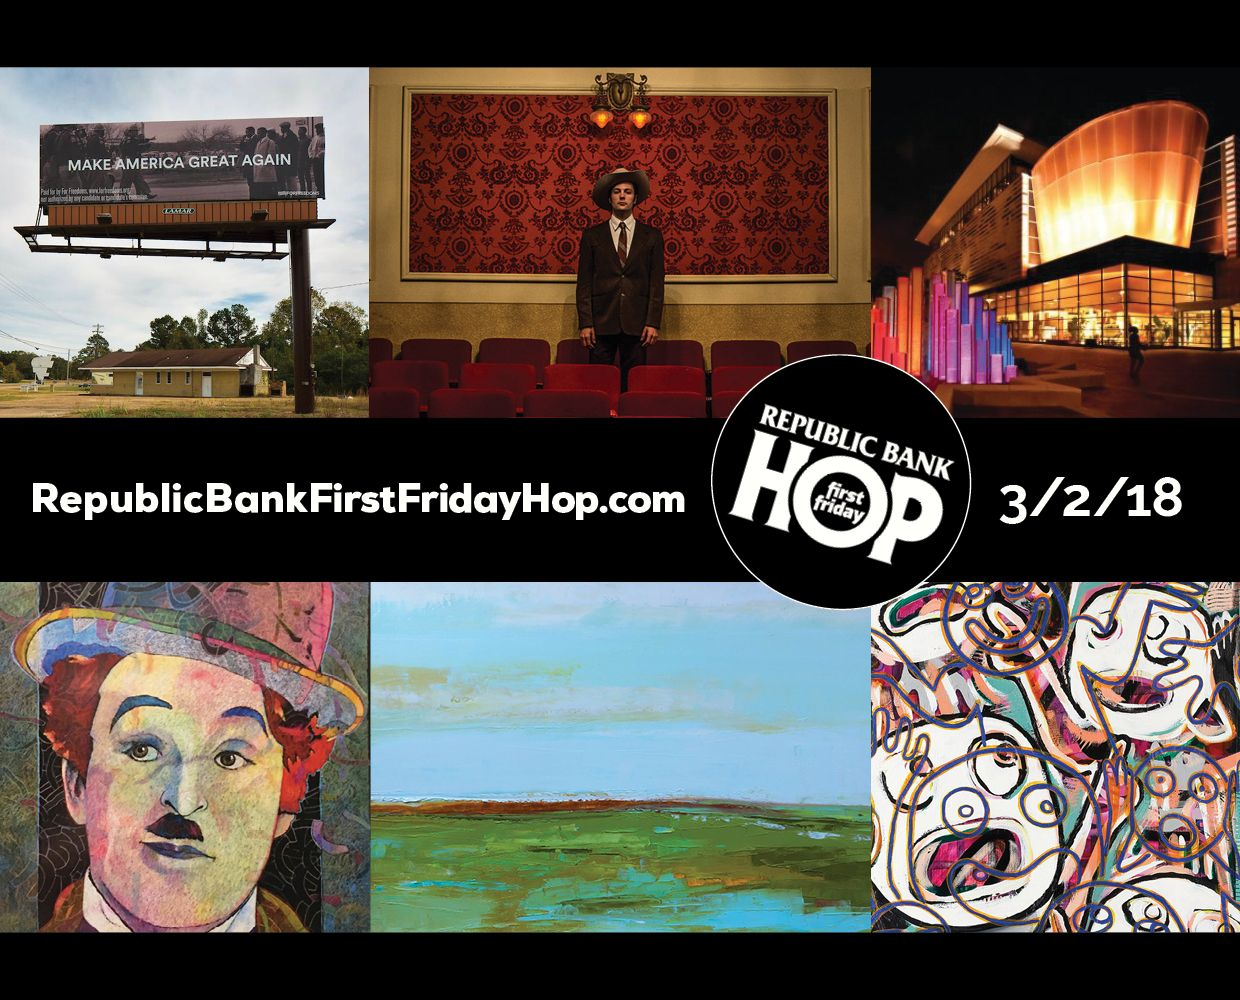 March 2 - Republic Bank First Friday Hop image